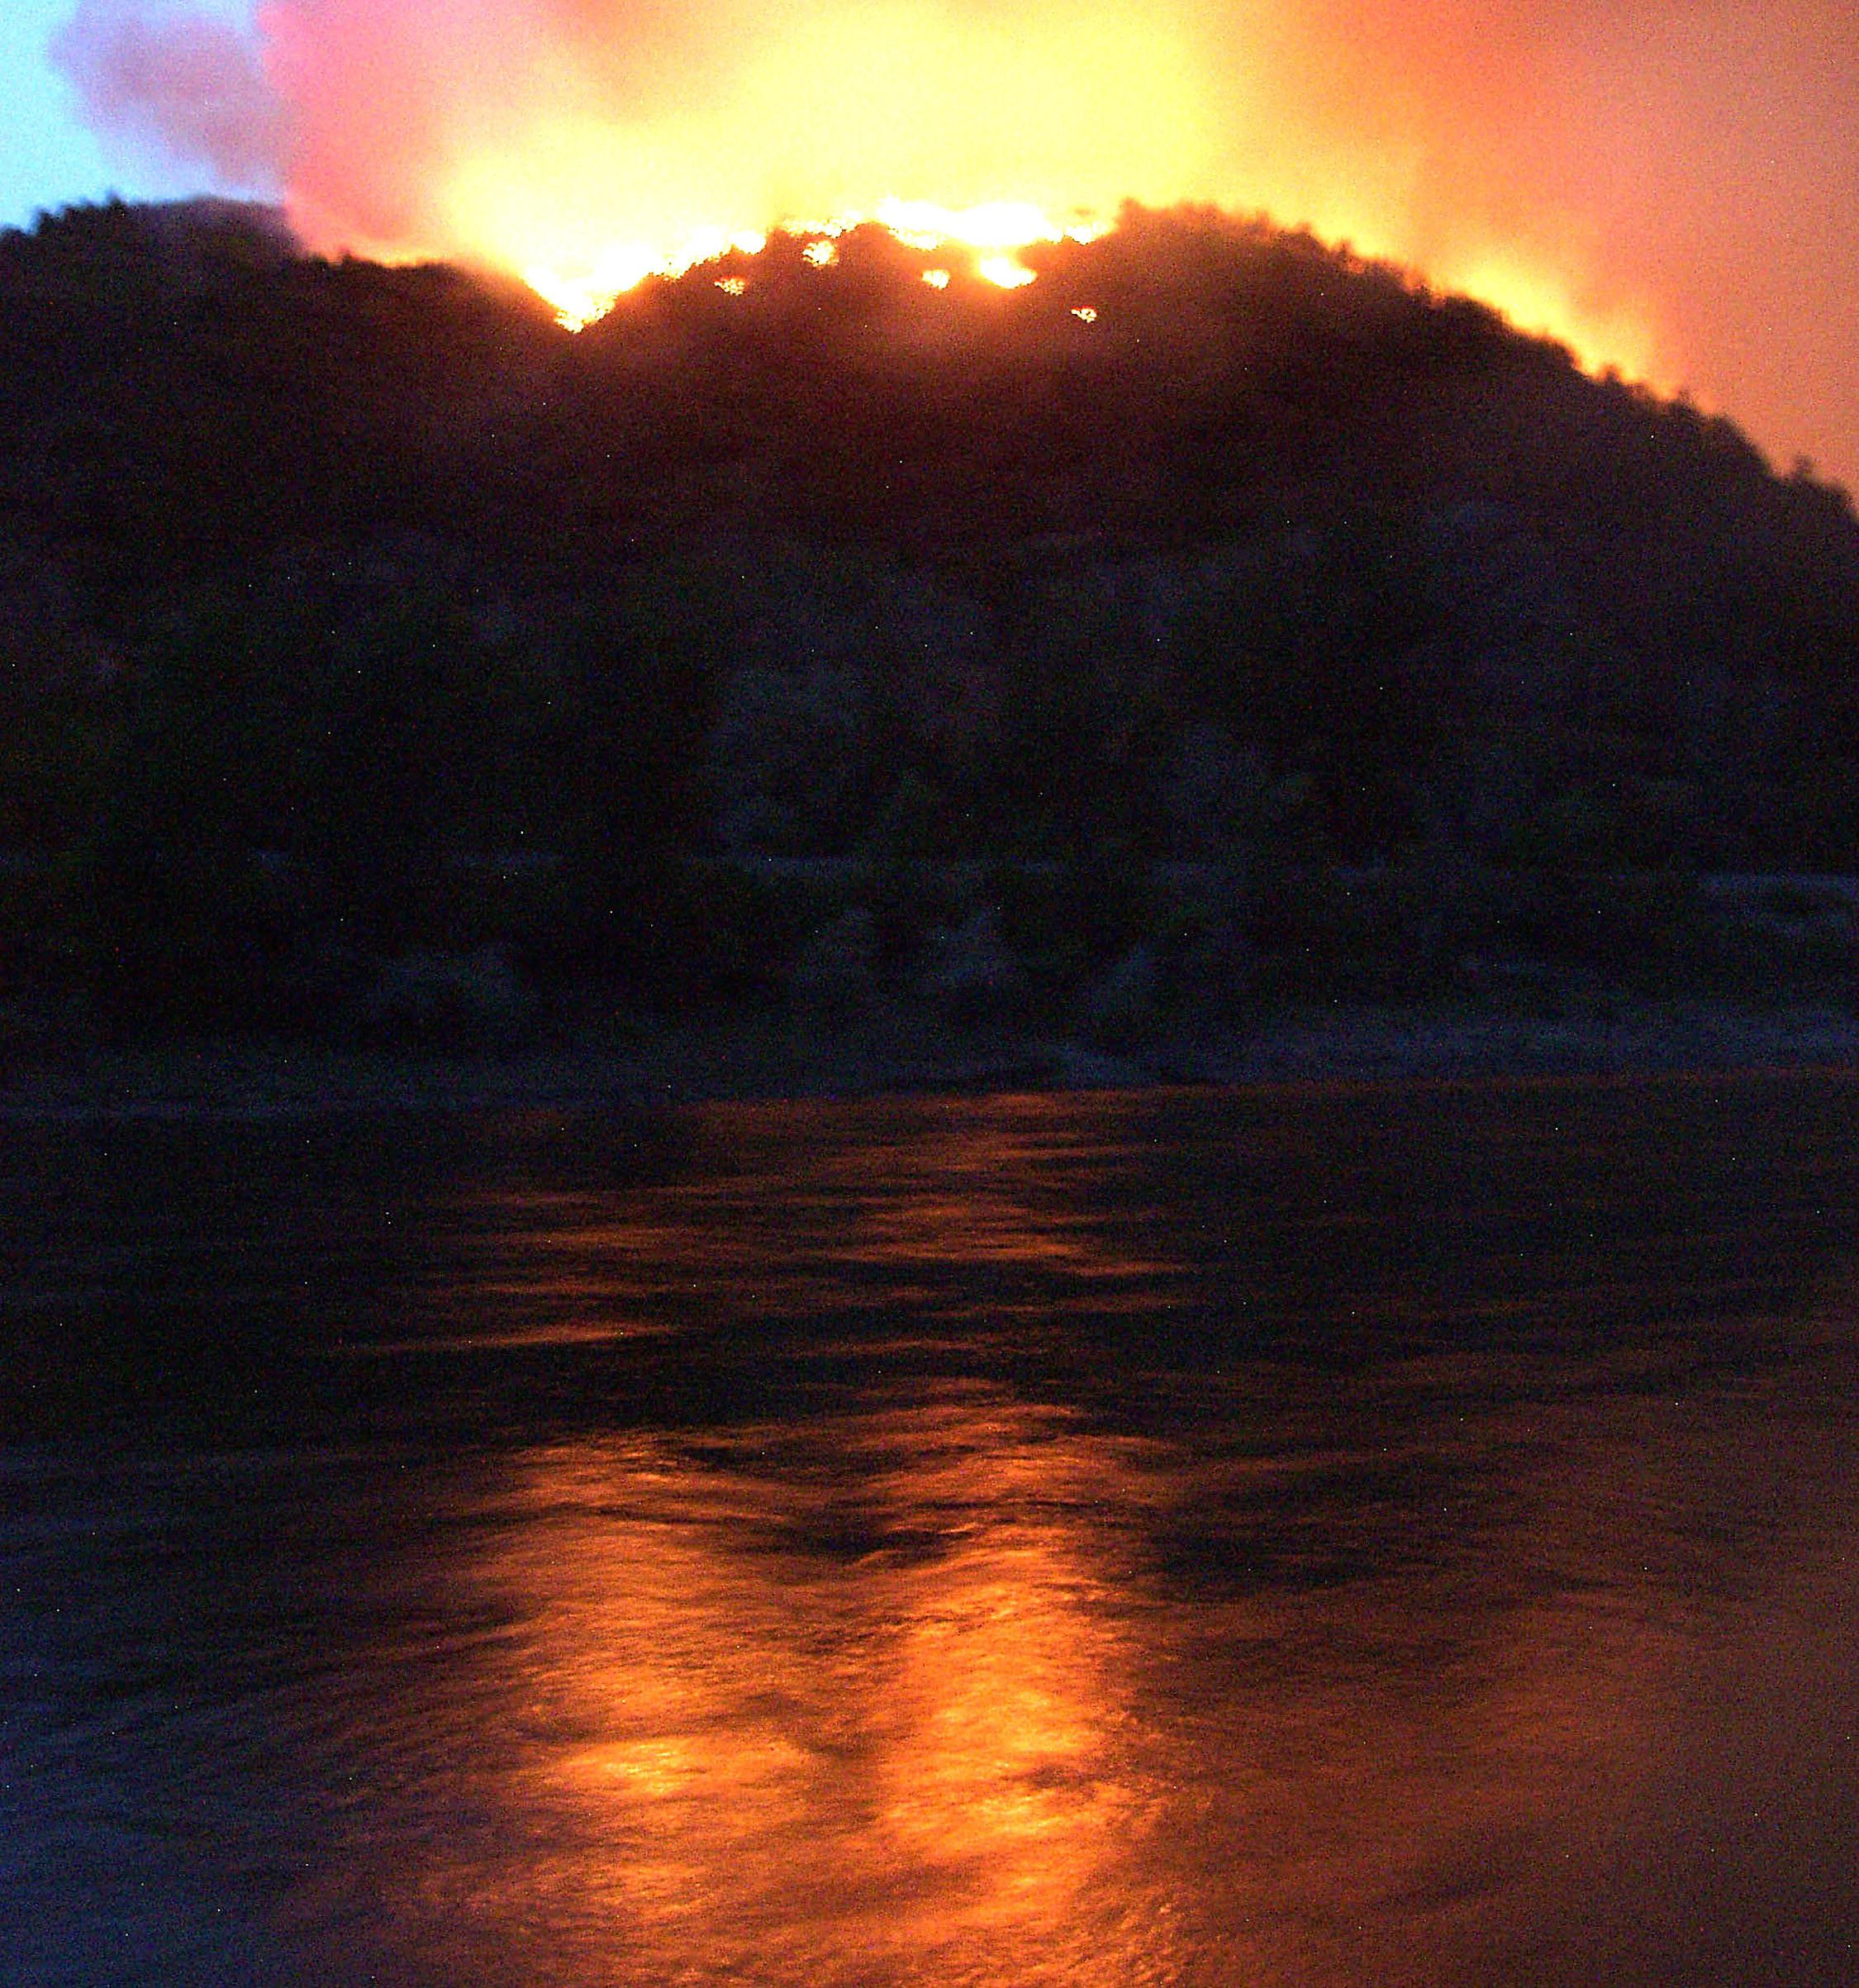 Wildfires Have Burned Nearly 7 Million Acres So Far, Up 6